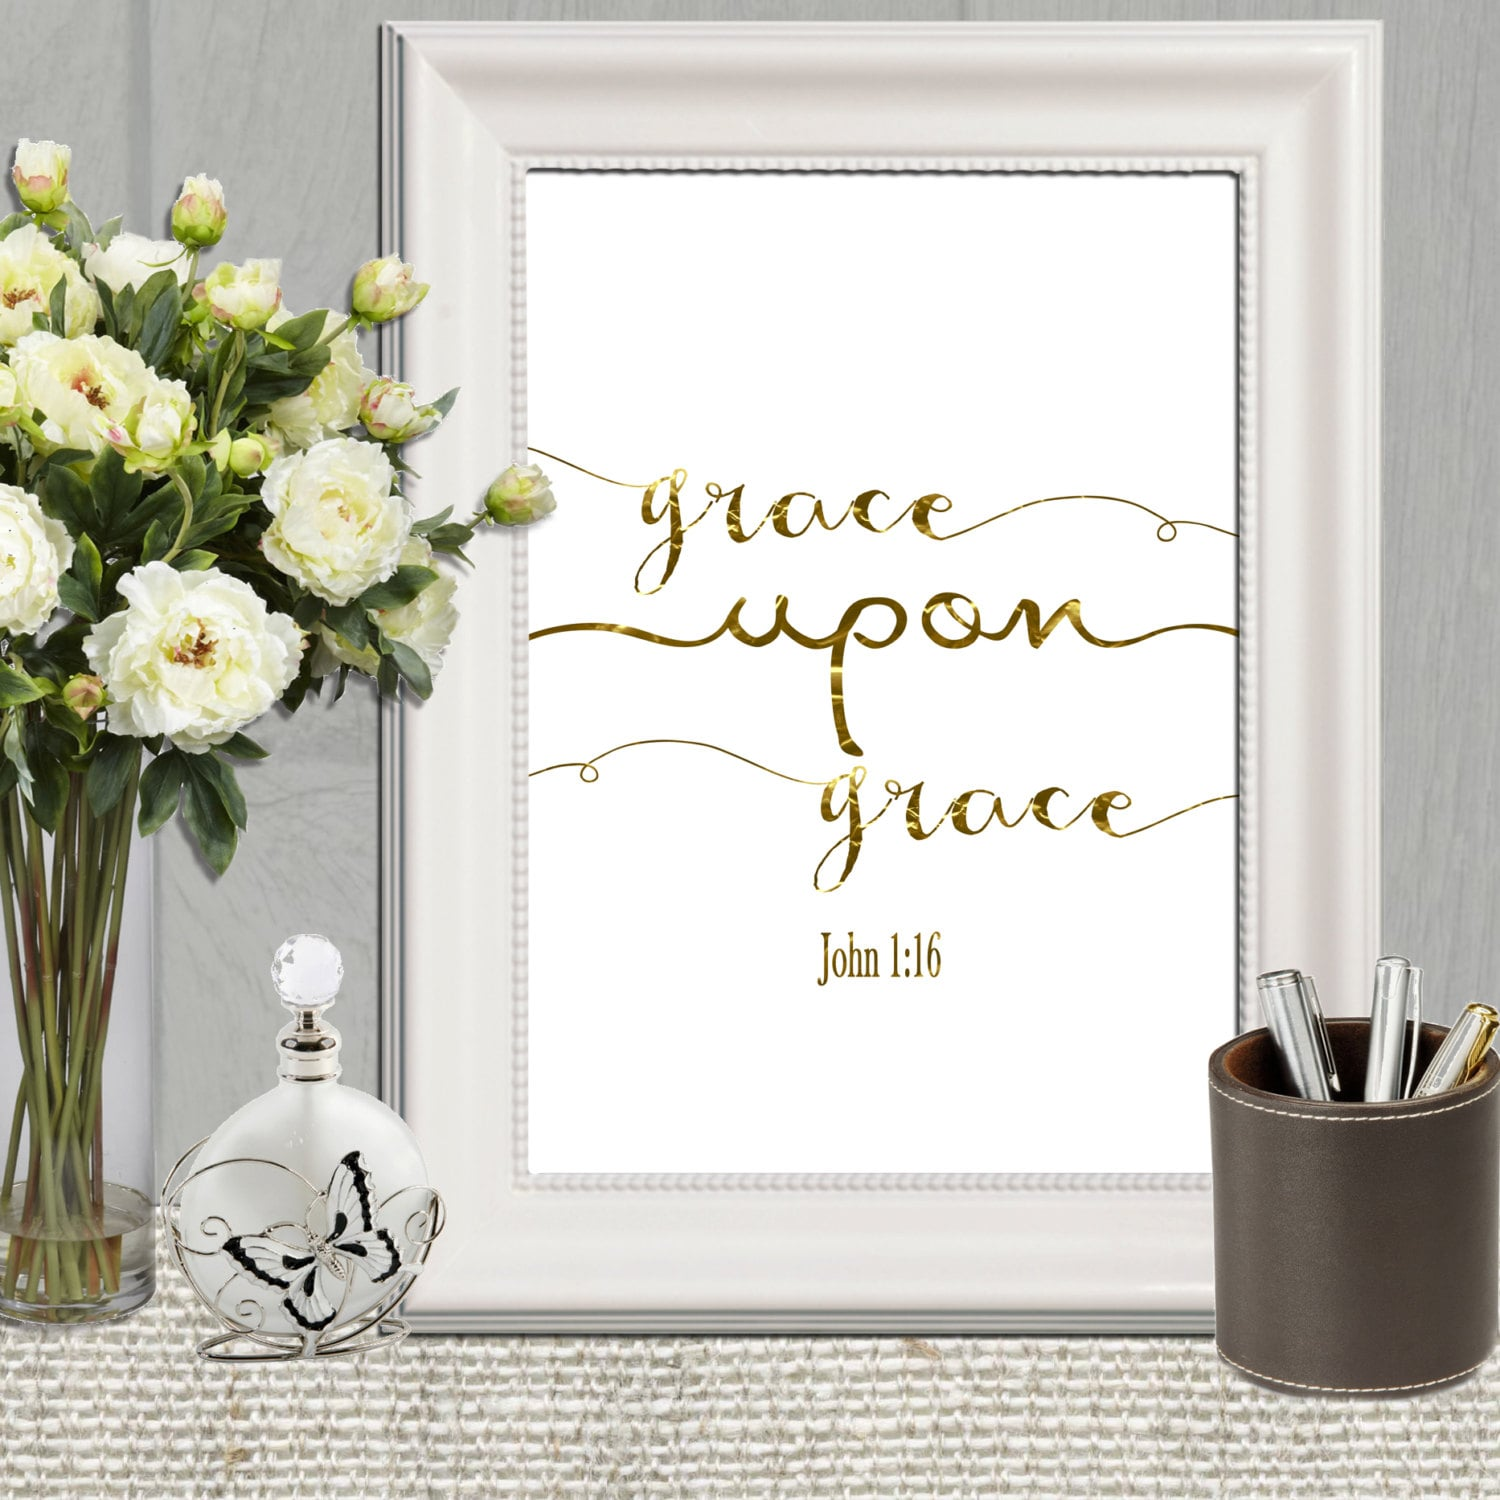 Gold Letter Wall Art Grace Upon Grace Print Gold Christian Art Gold Letters Wall